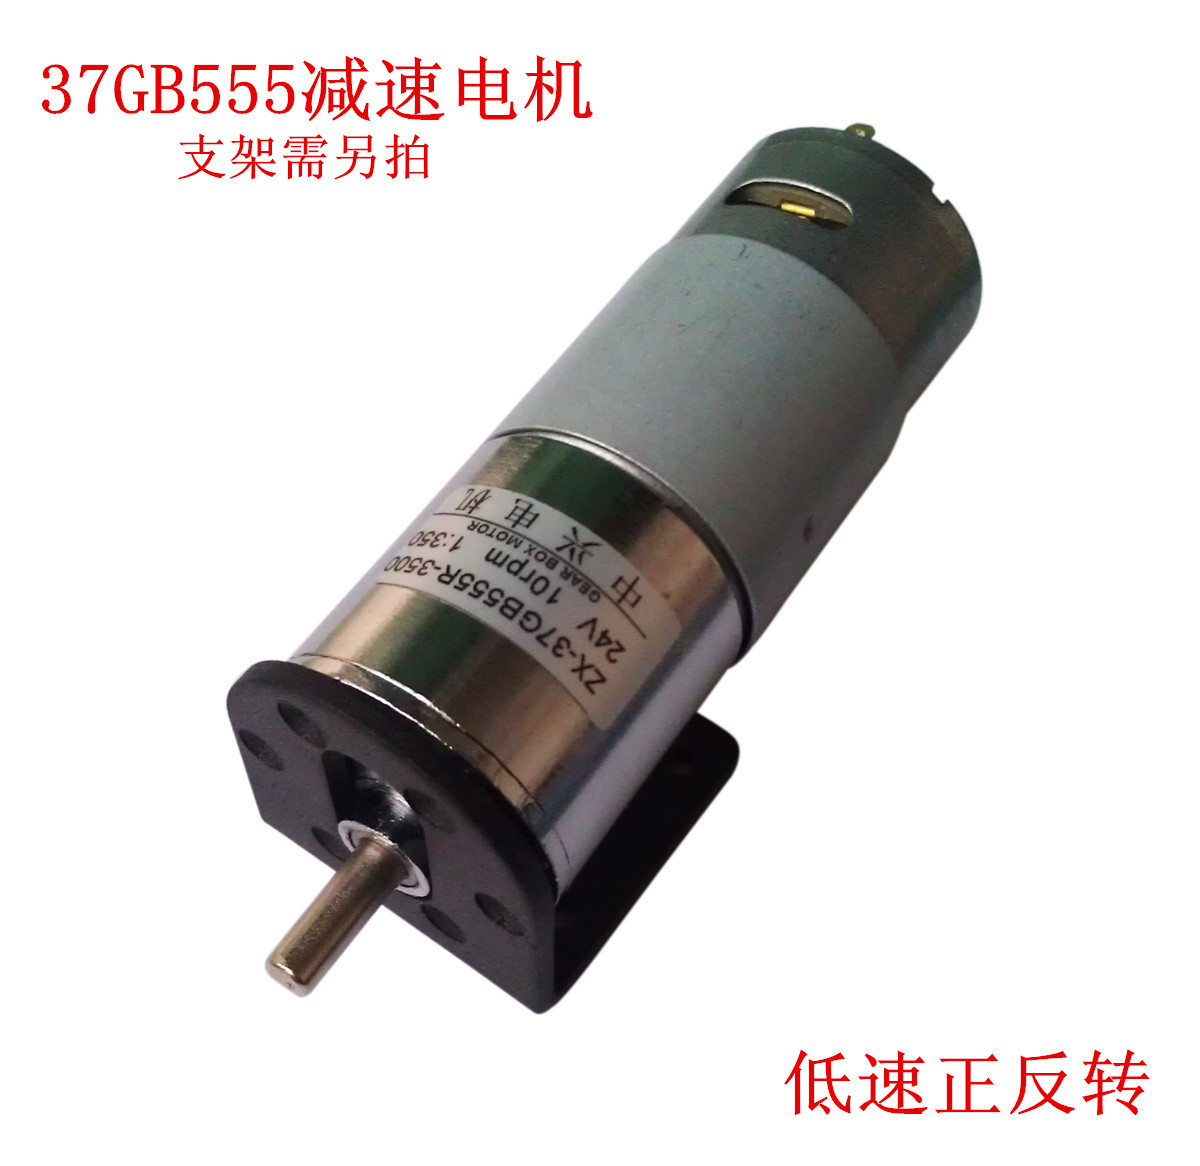 37GB555 micro DC speed reduction motor low speed positive inversion motor 12V24V slow speed adjustable motor dental endodontic root canal endo motor wireless reciprocating 16 1 reduction